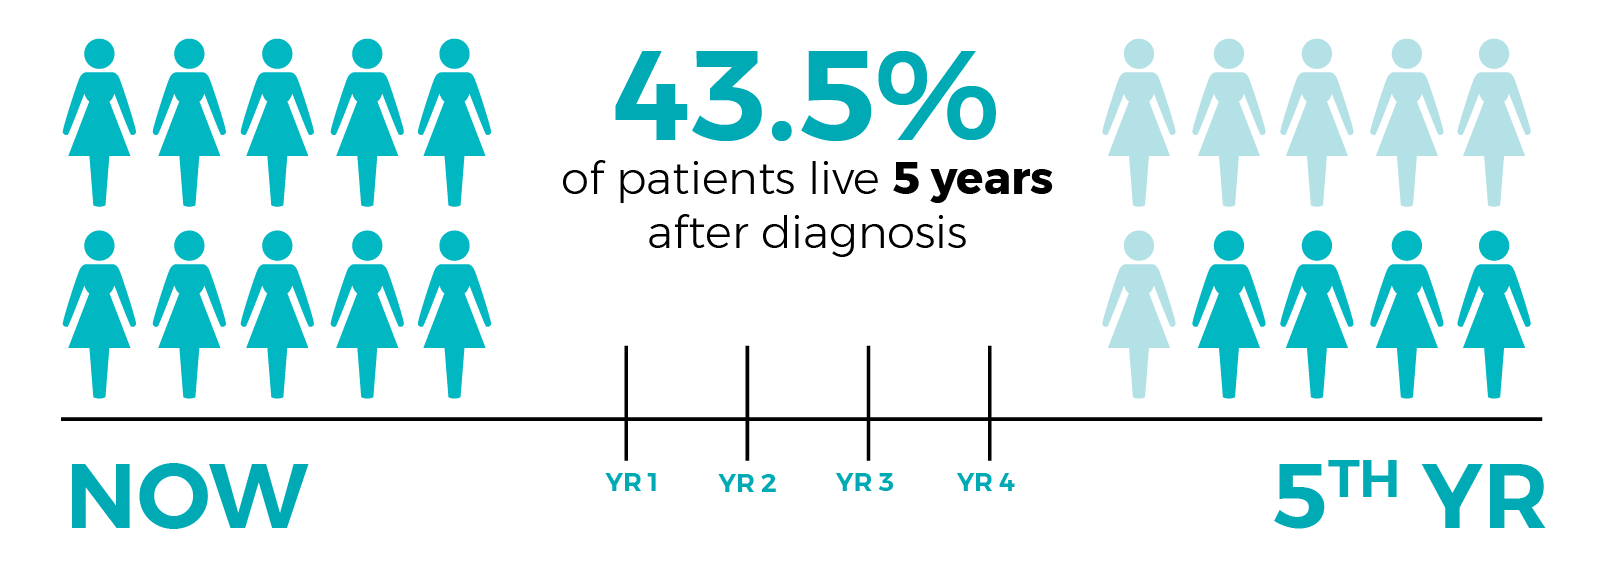 43.5% of patients live only 5 years after diagnosis